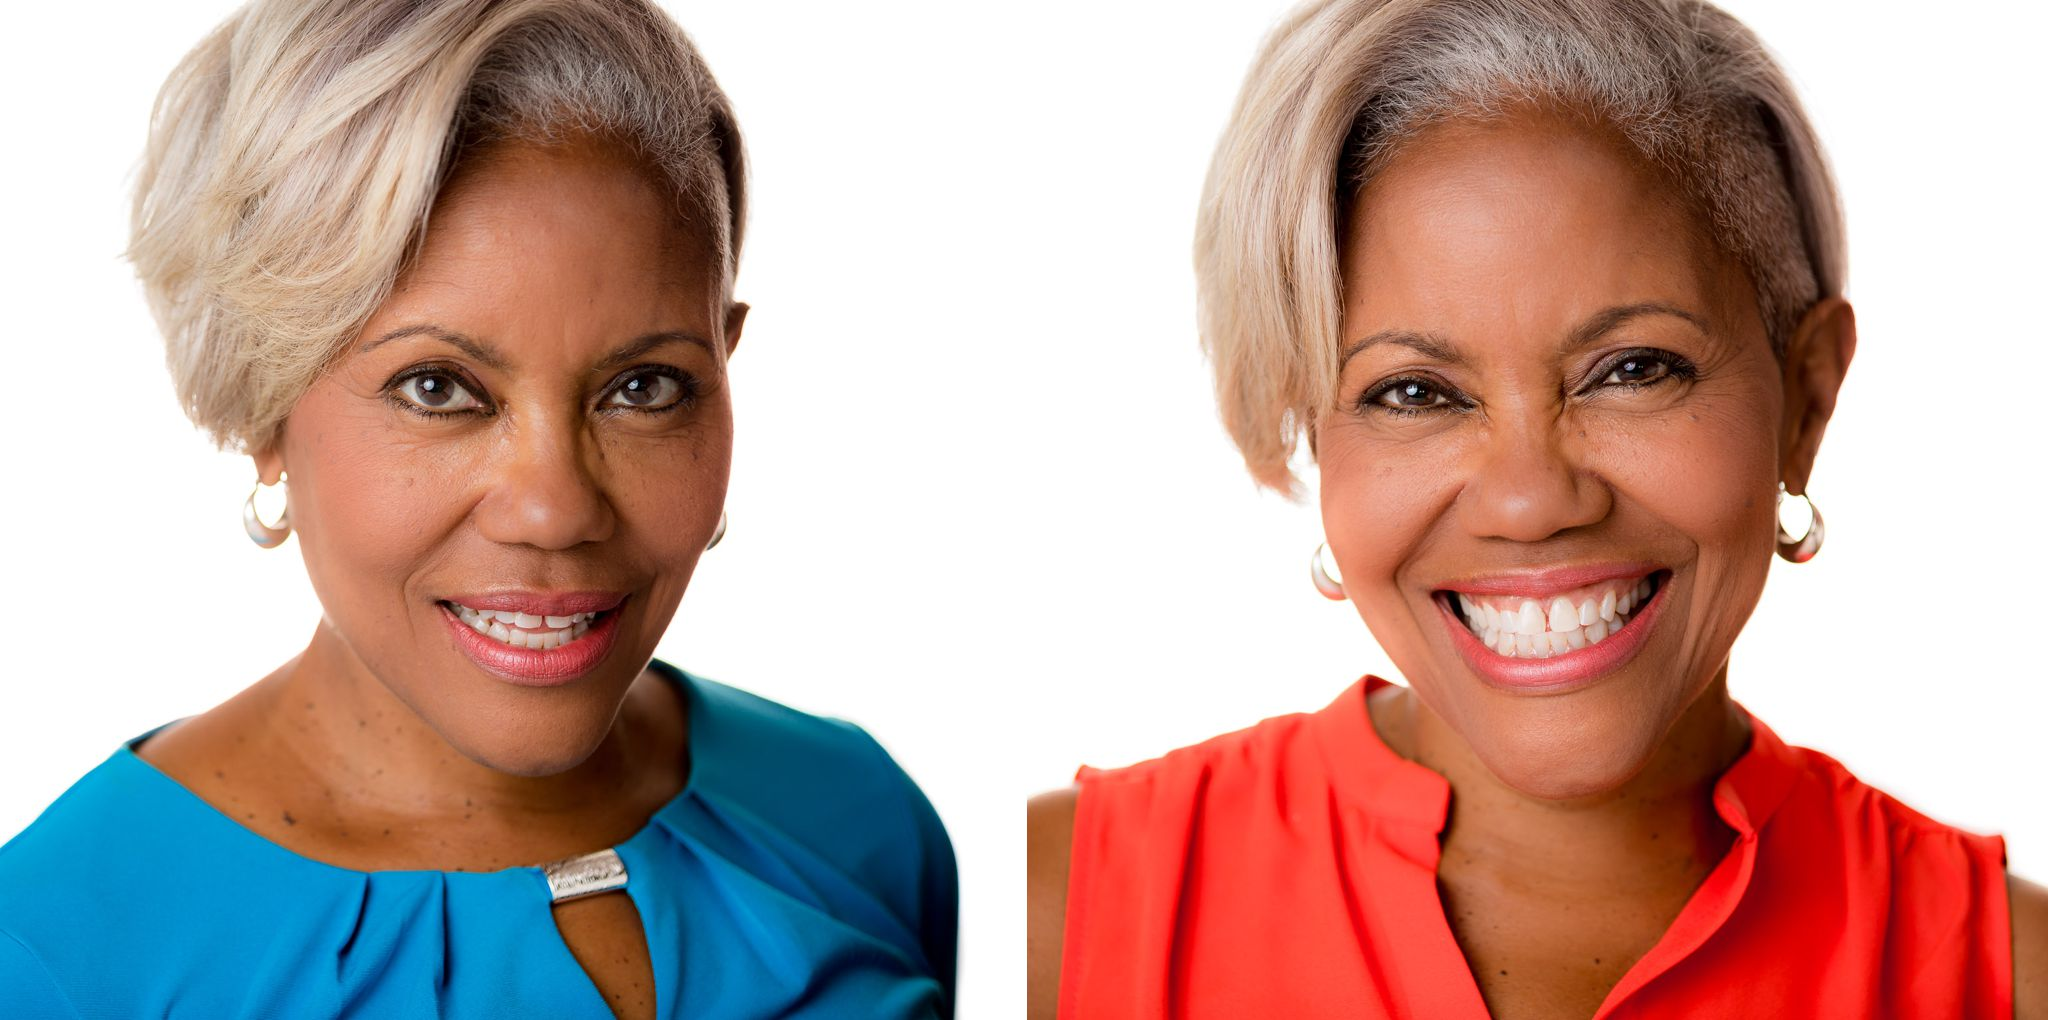 Women 4-Headshots-Washington-DC-Lenzy-Ruffin-Photography.jpg